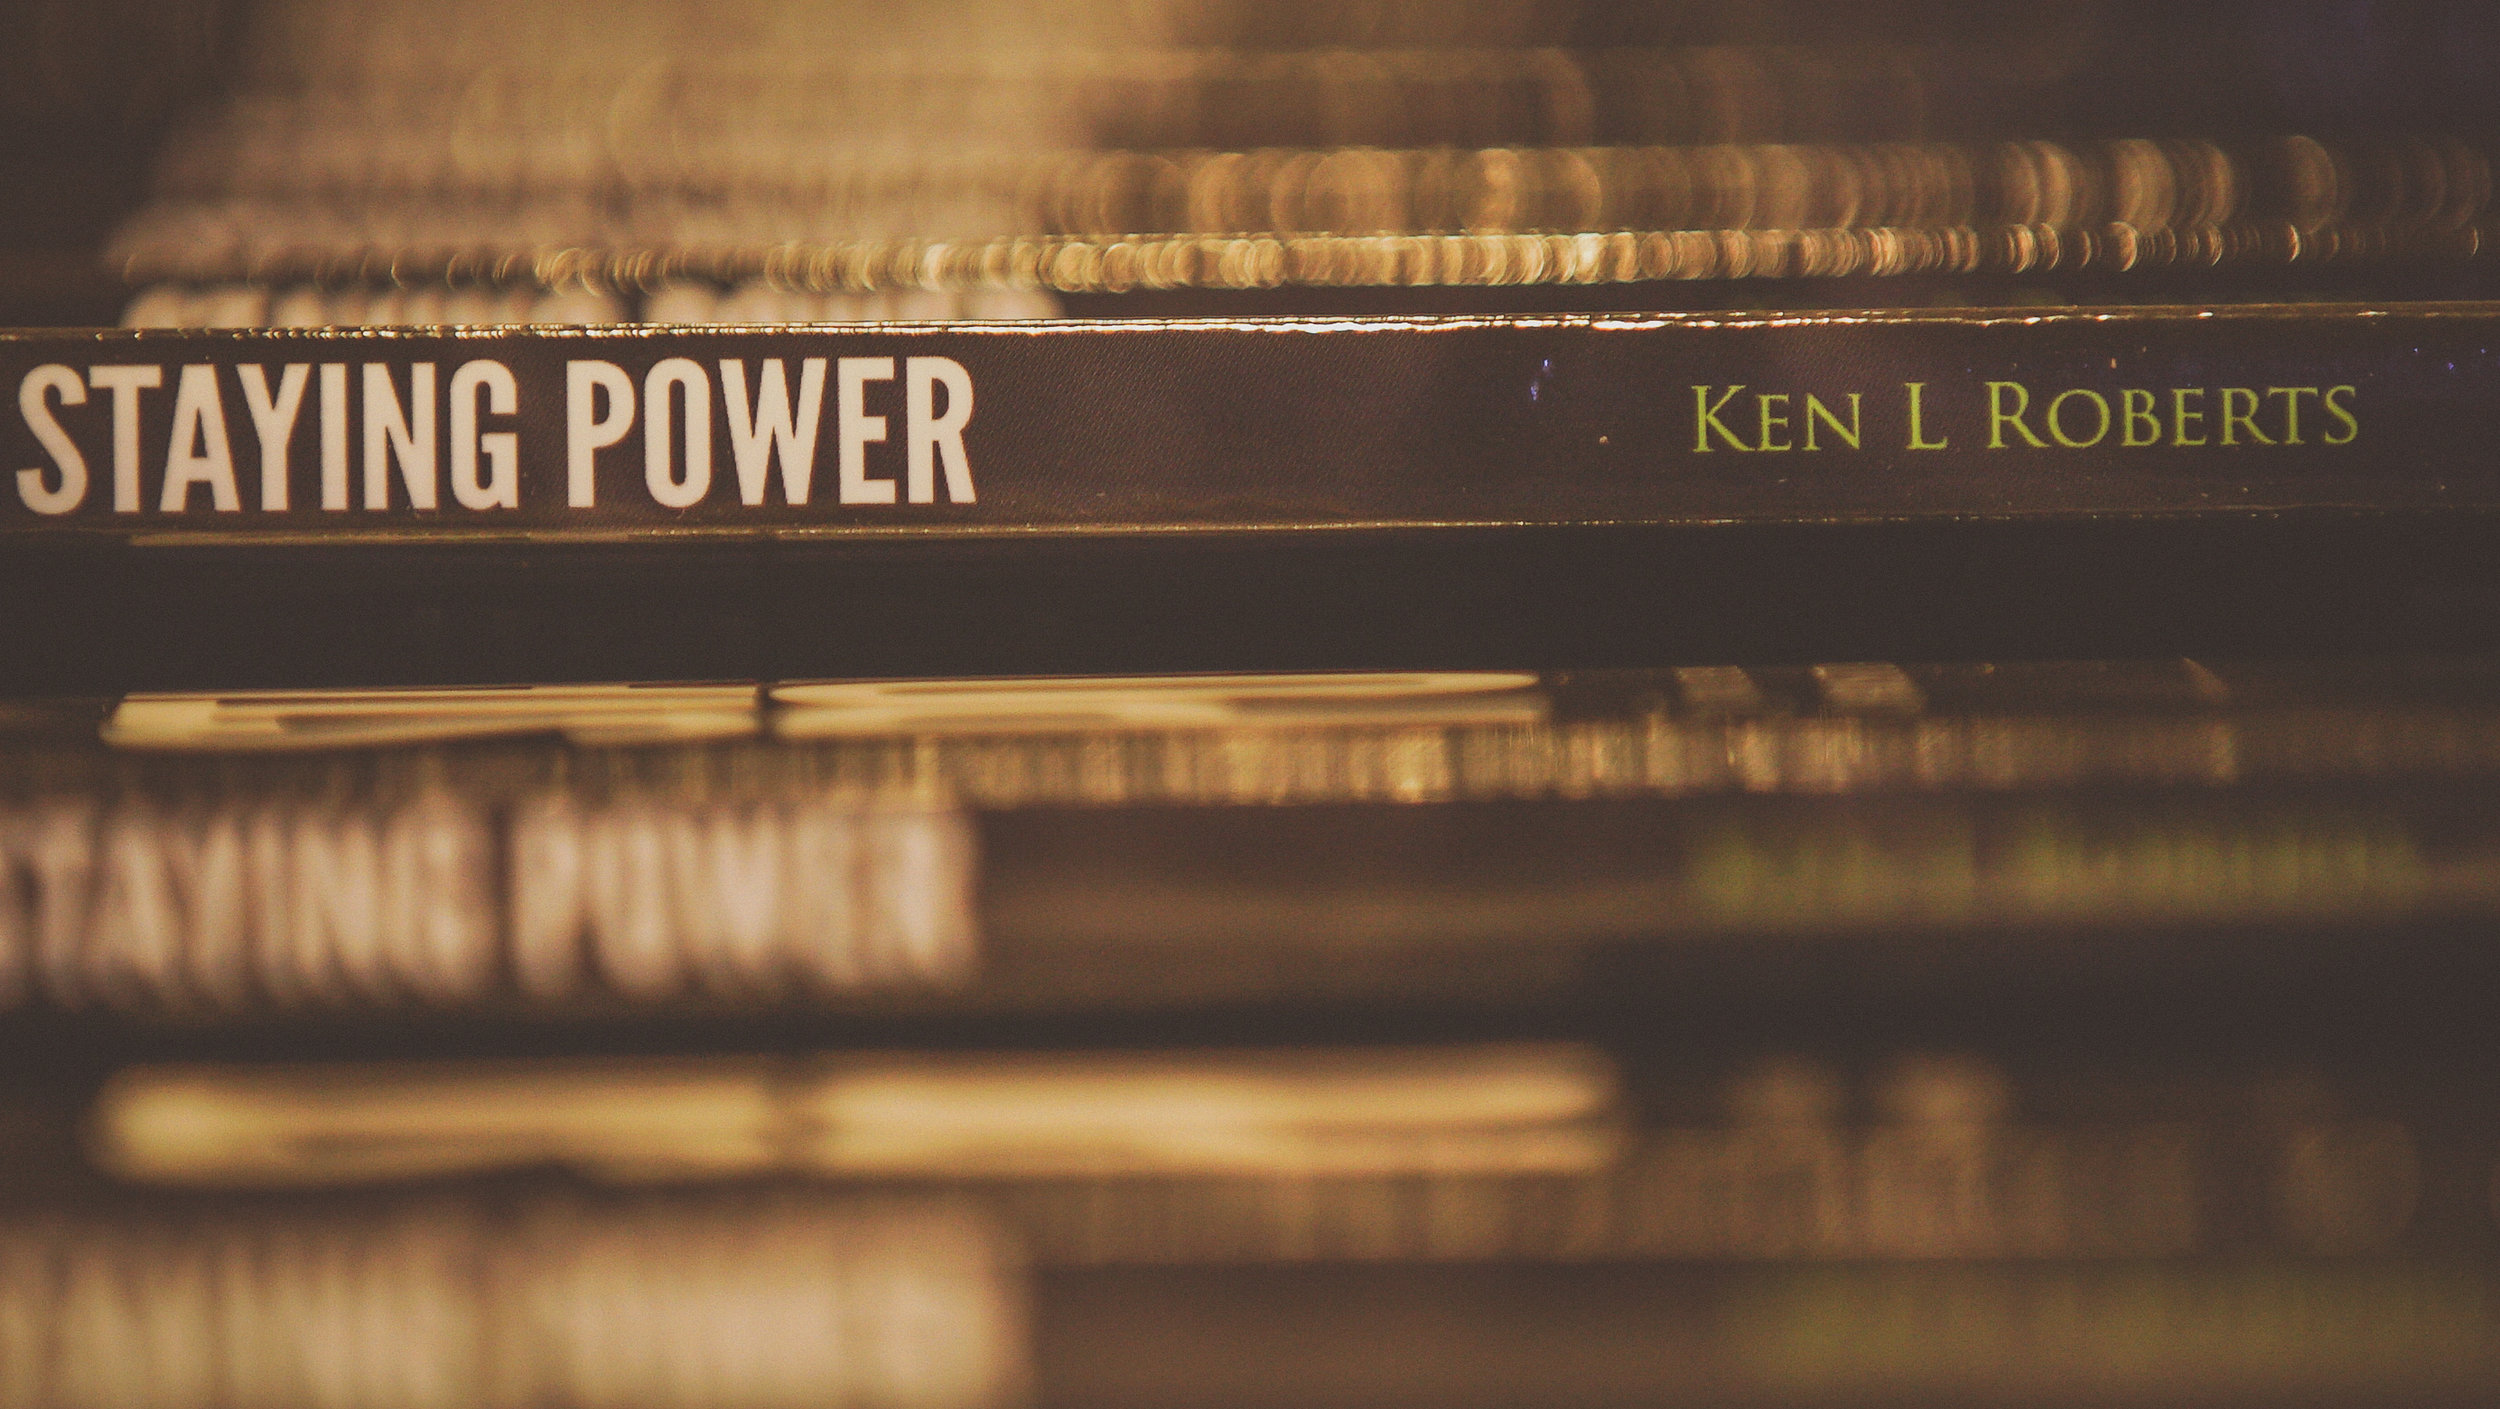 STAYING POWER -